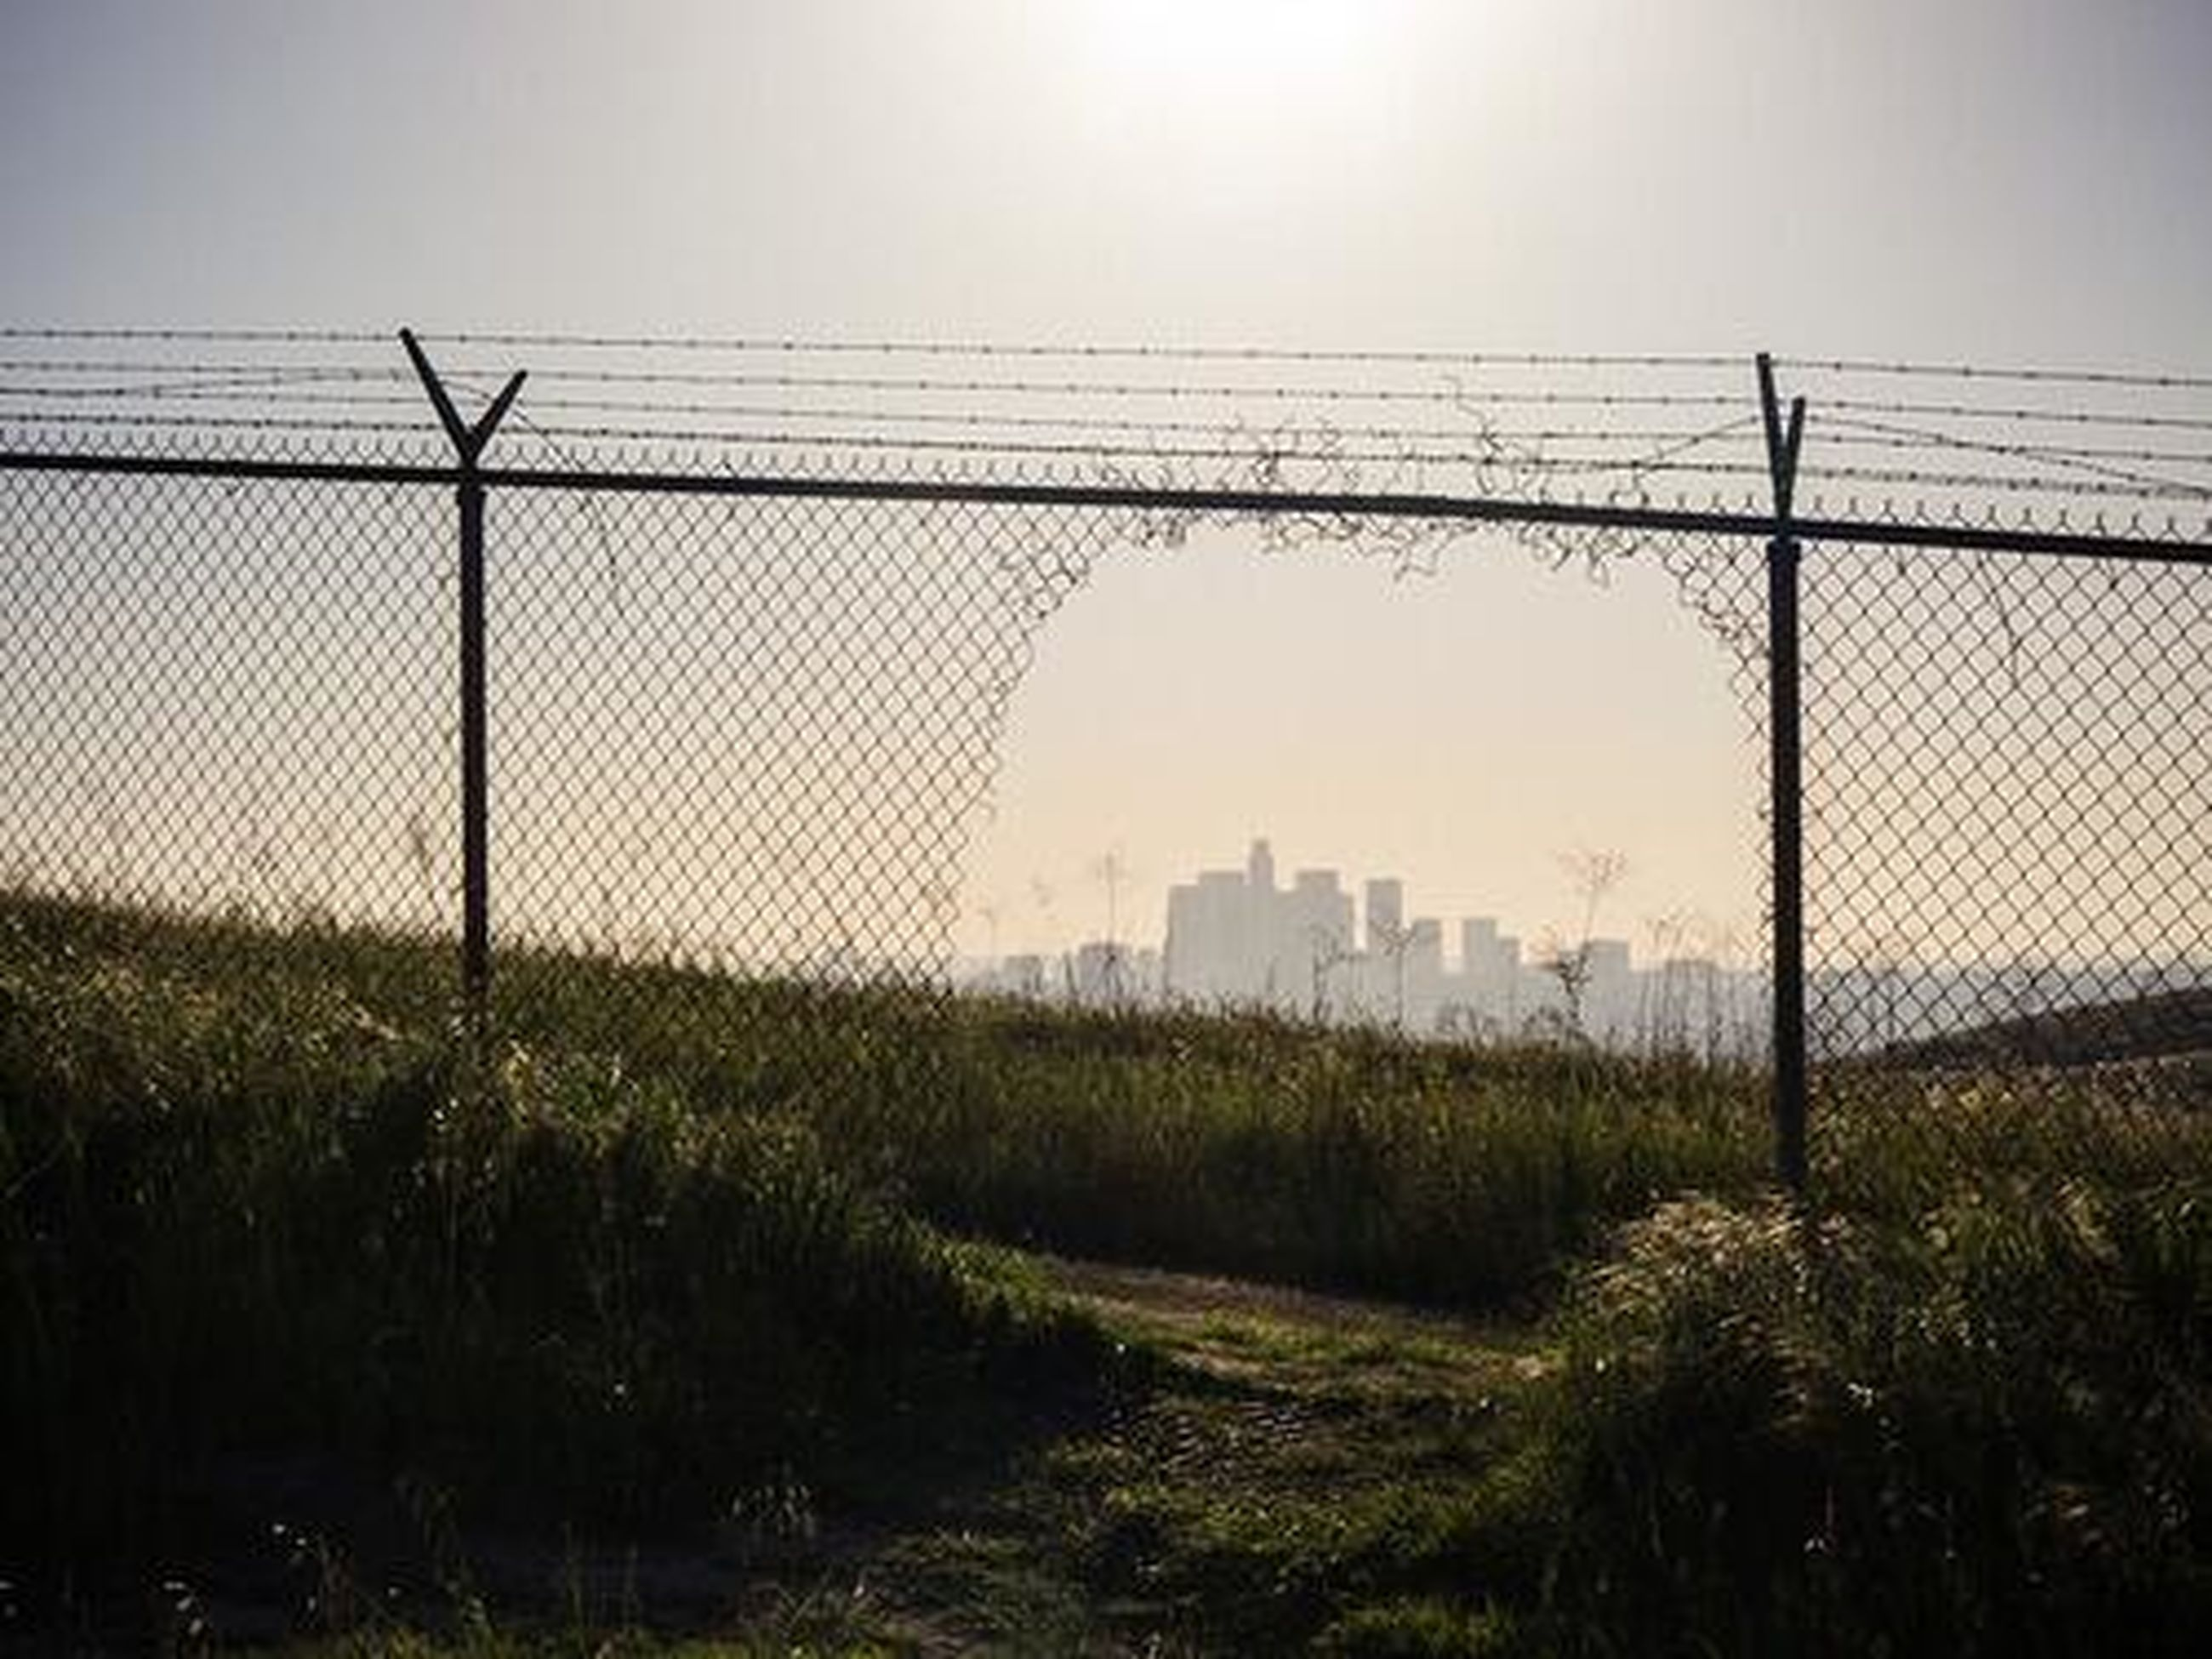 fence, built structure, field, architecture, chainlink fence, protection, safety, security, clear sky, grass, electricity pylon, sky, barbed wire, building exterior, connection, landscape, fuel and power generation, metal, power line, outdoors